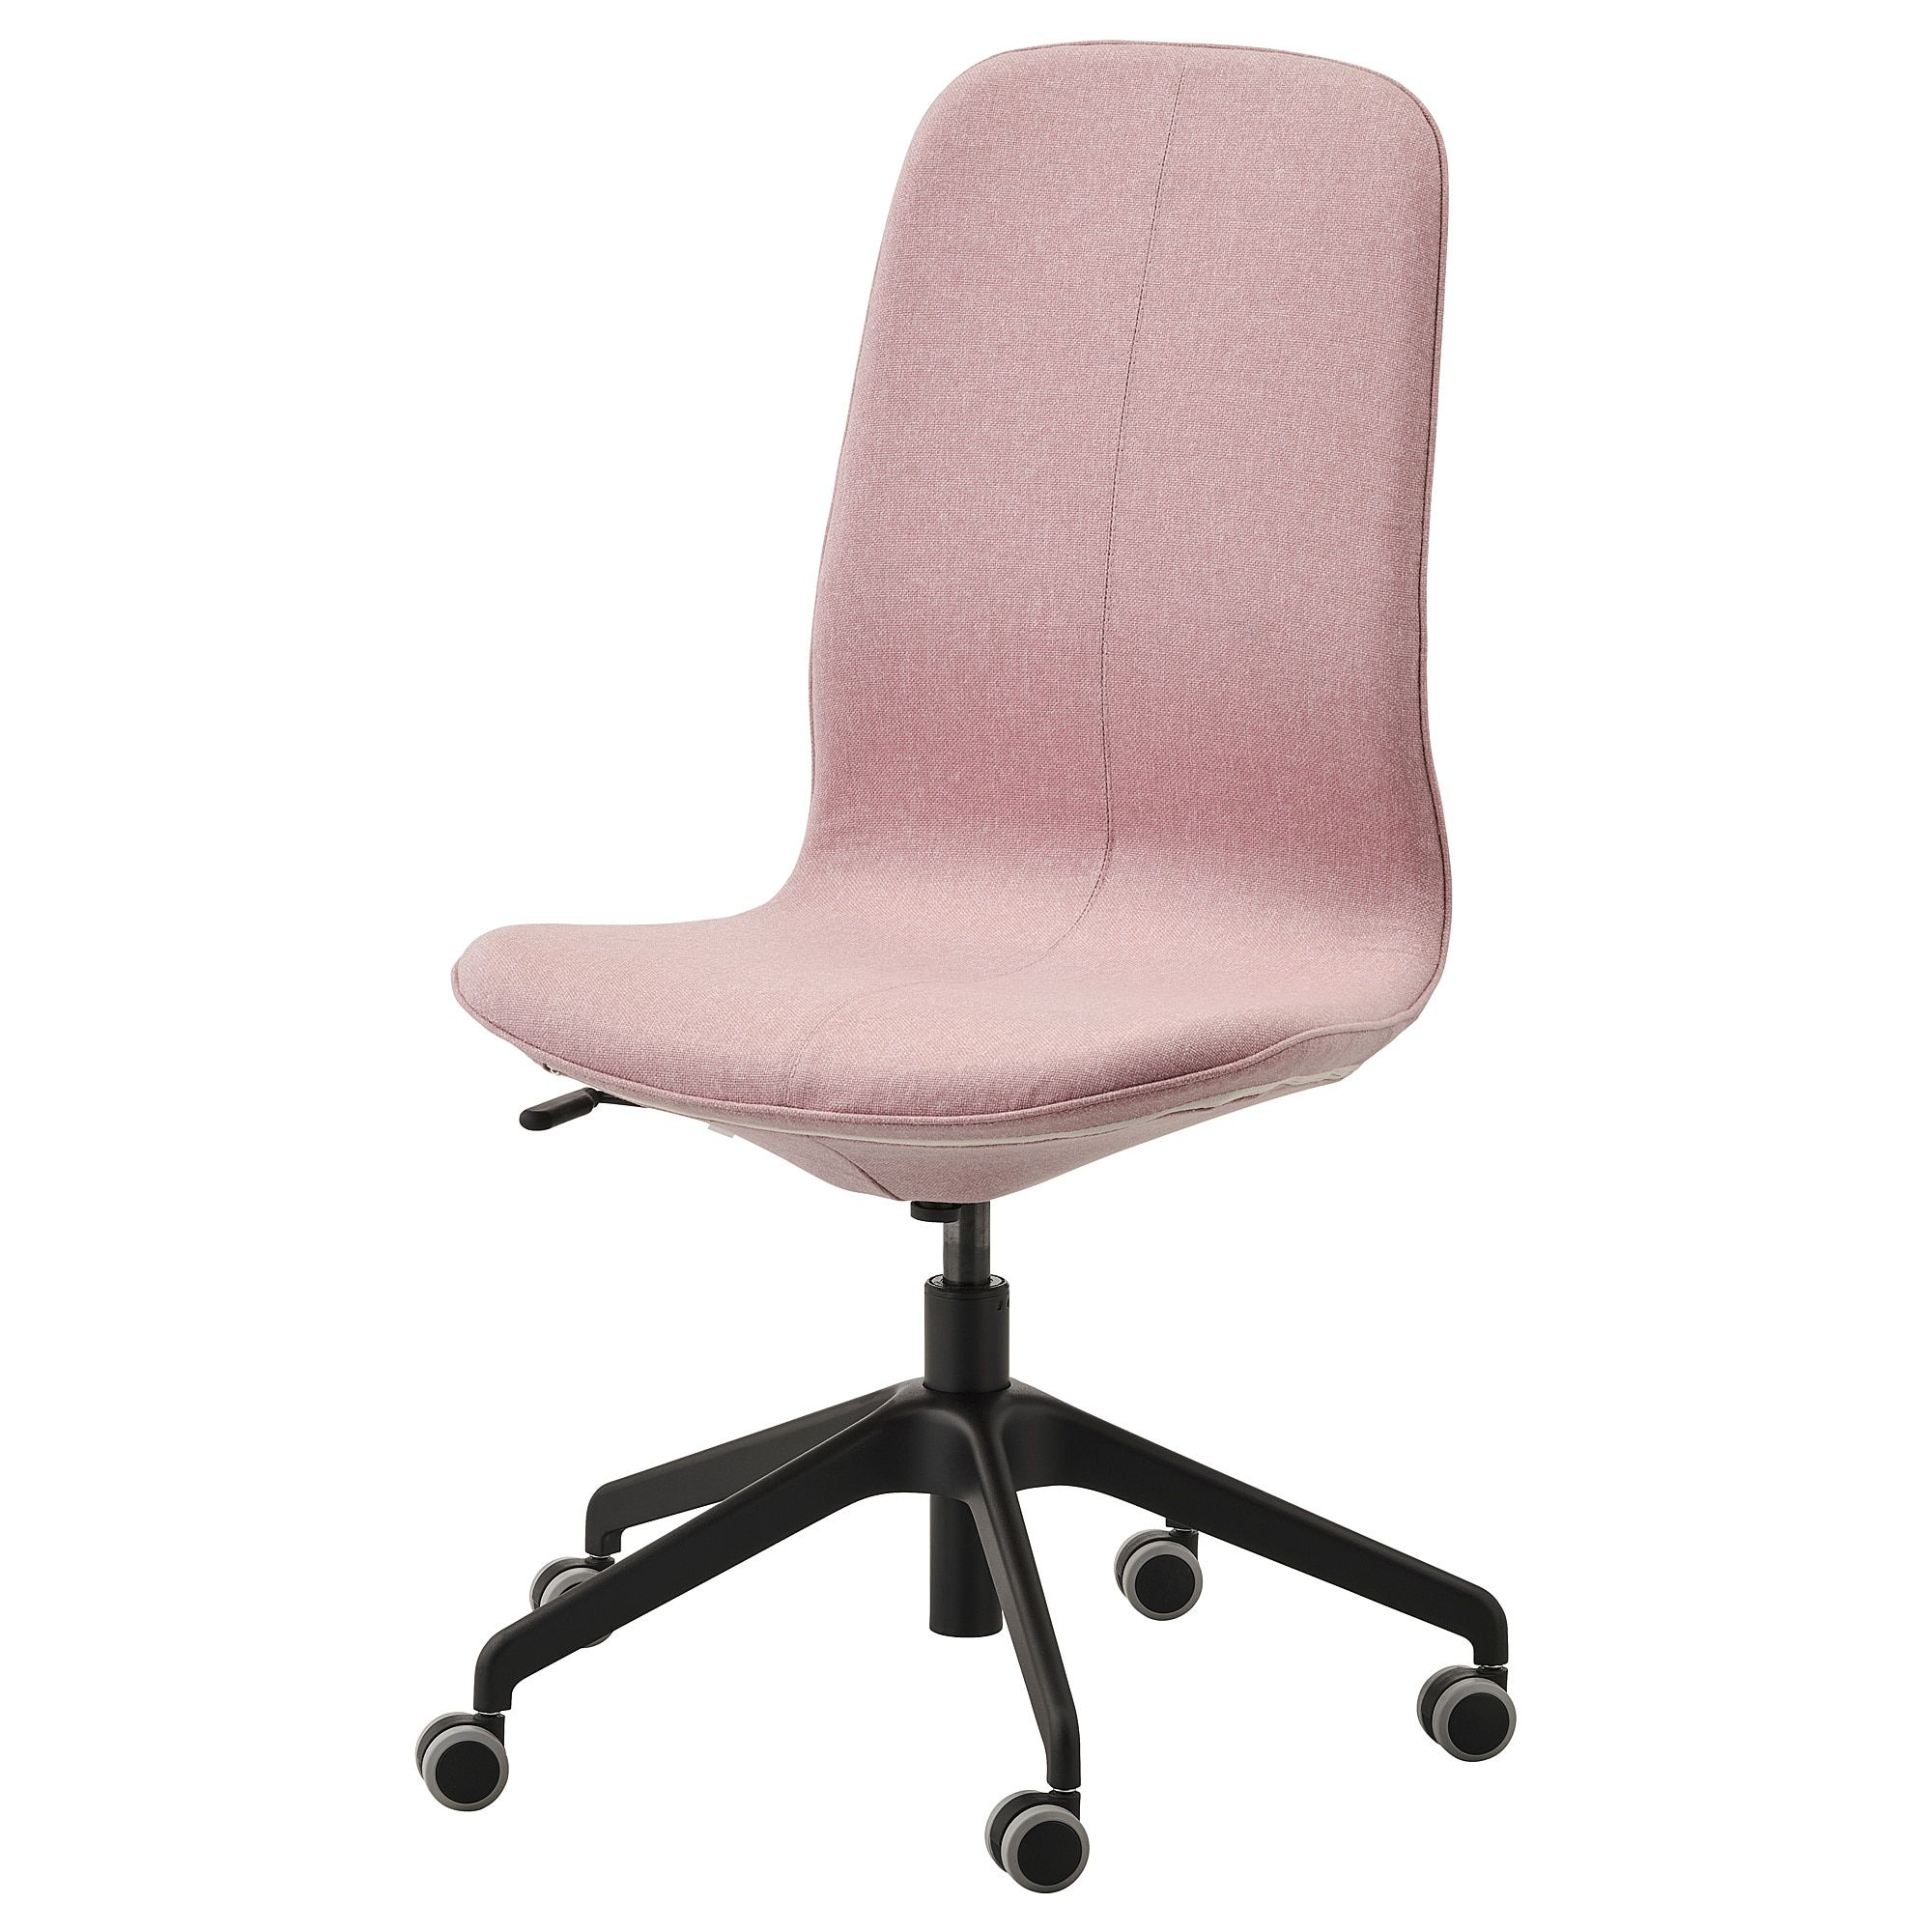 US Furniture and Home Furnishings | Chair, Black office